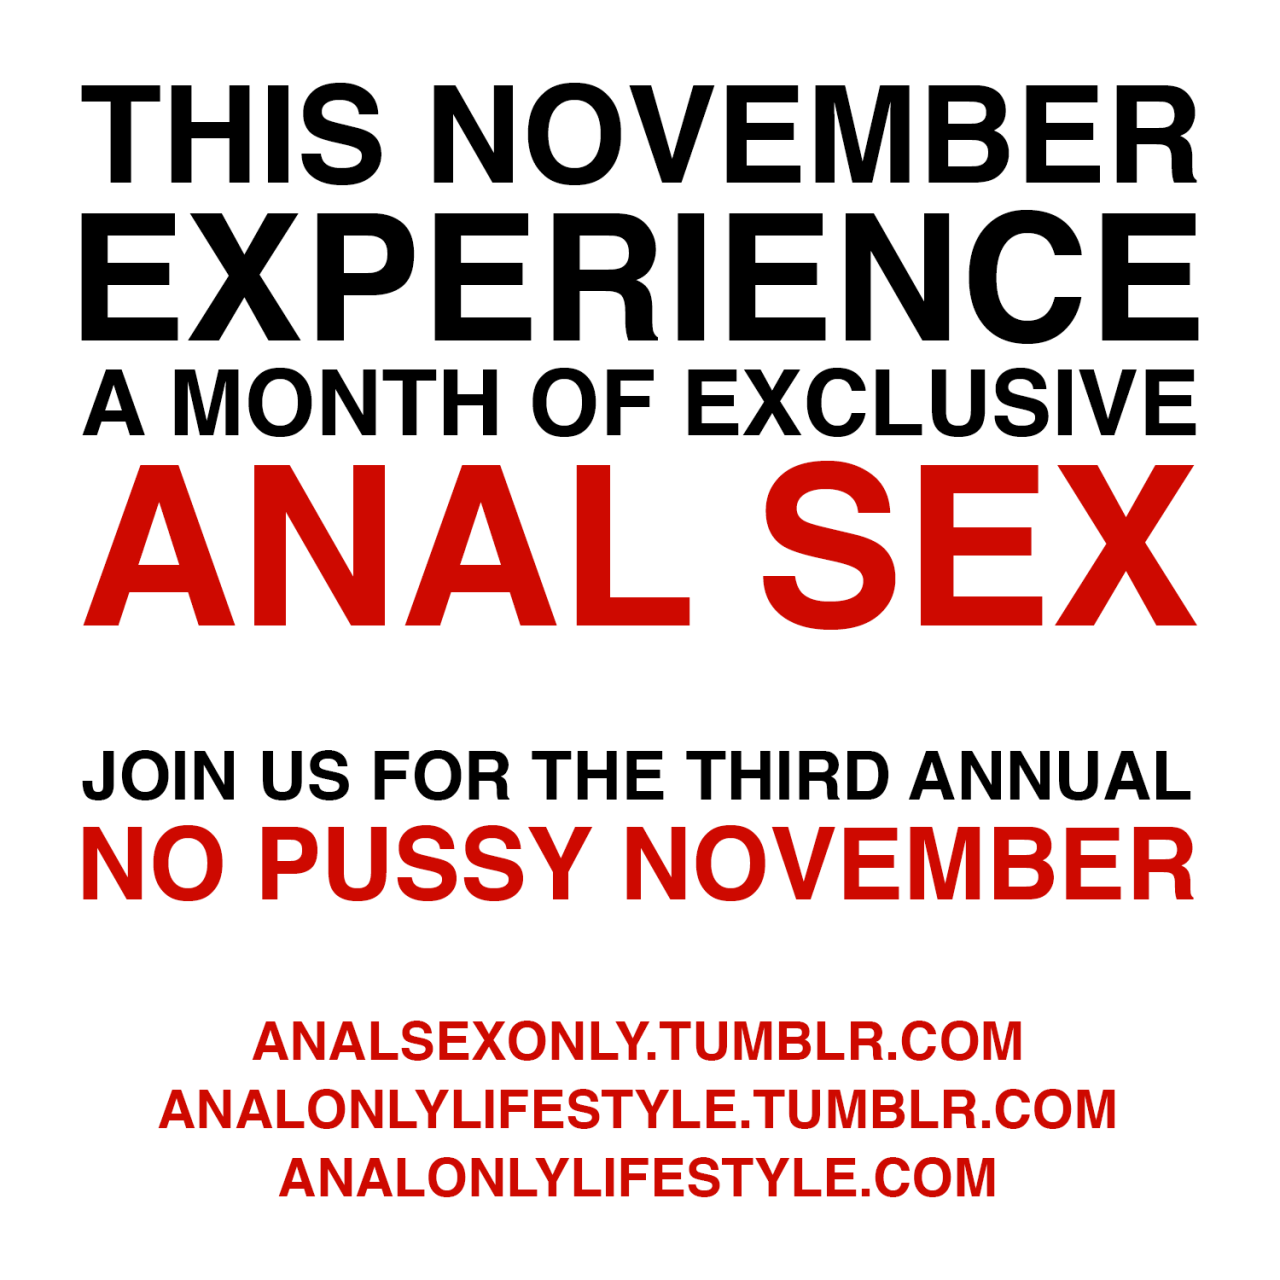 This November Experience A Month of Exclusive Anal Sex - Join Us In The Third Annual No Pussy November